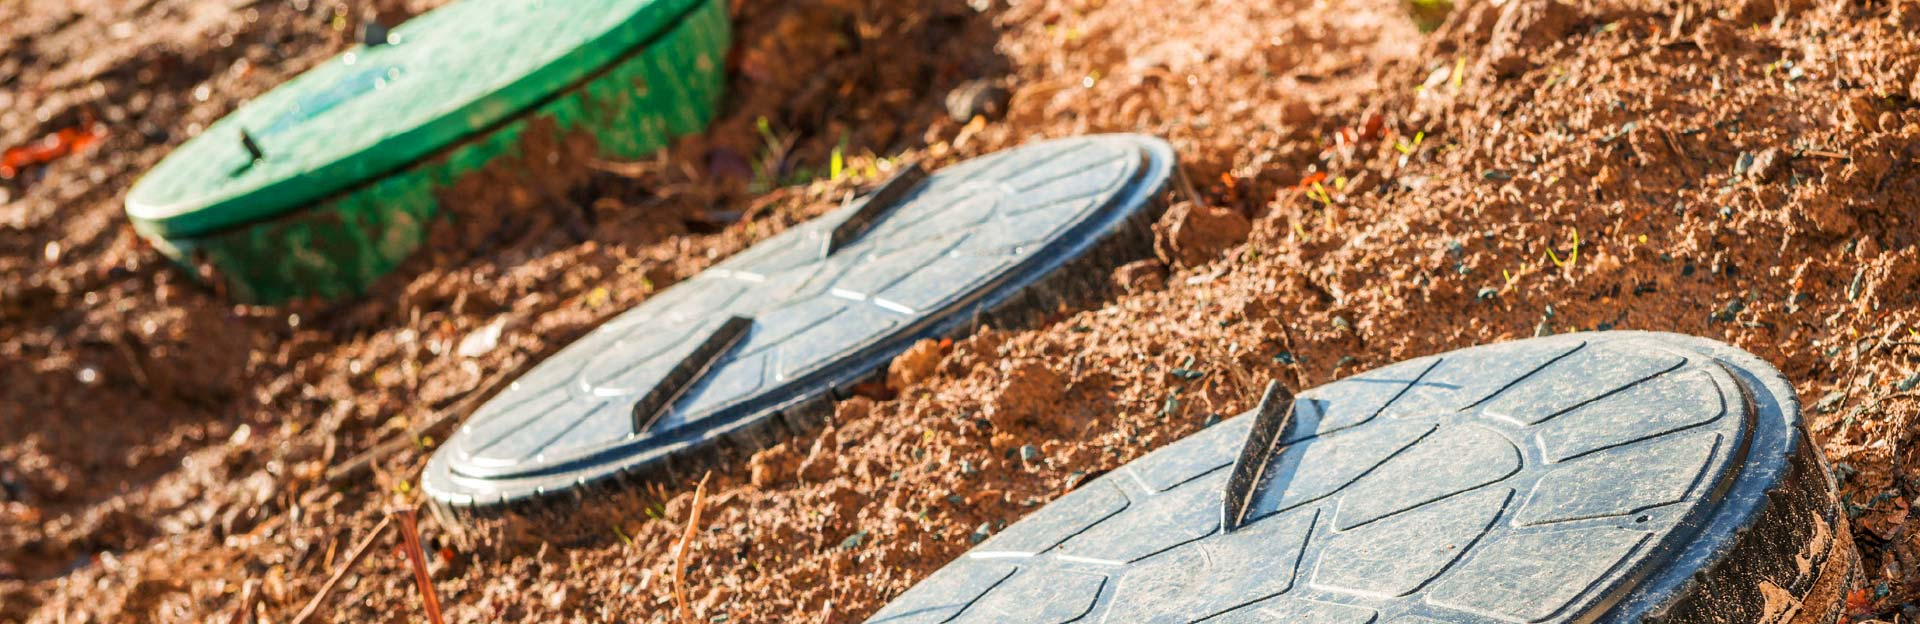 Call Paul Swoyer for Septic tank installation in Central Texas